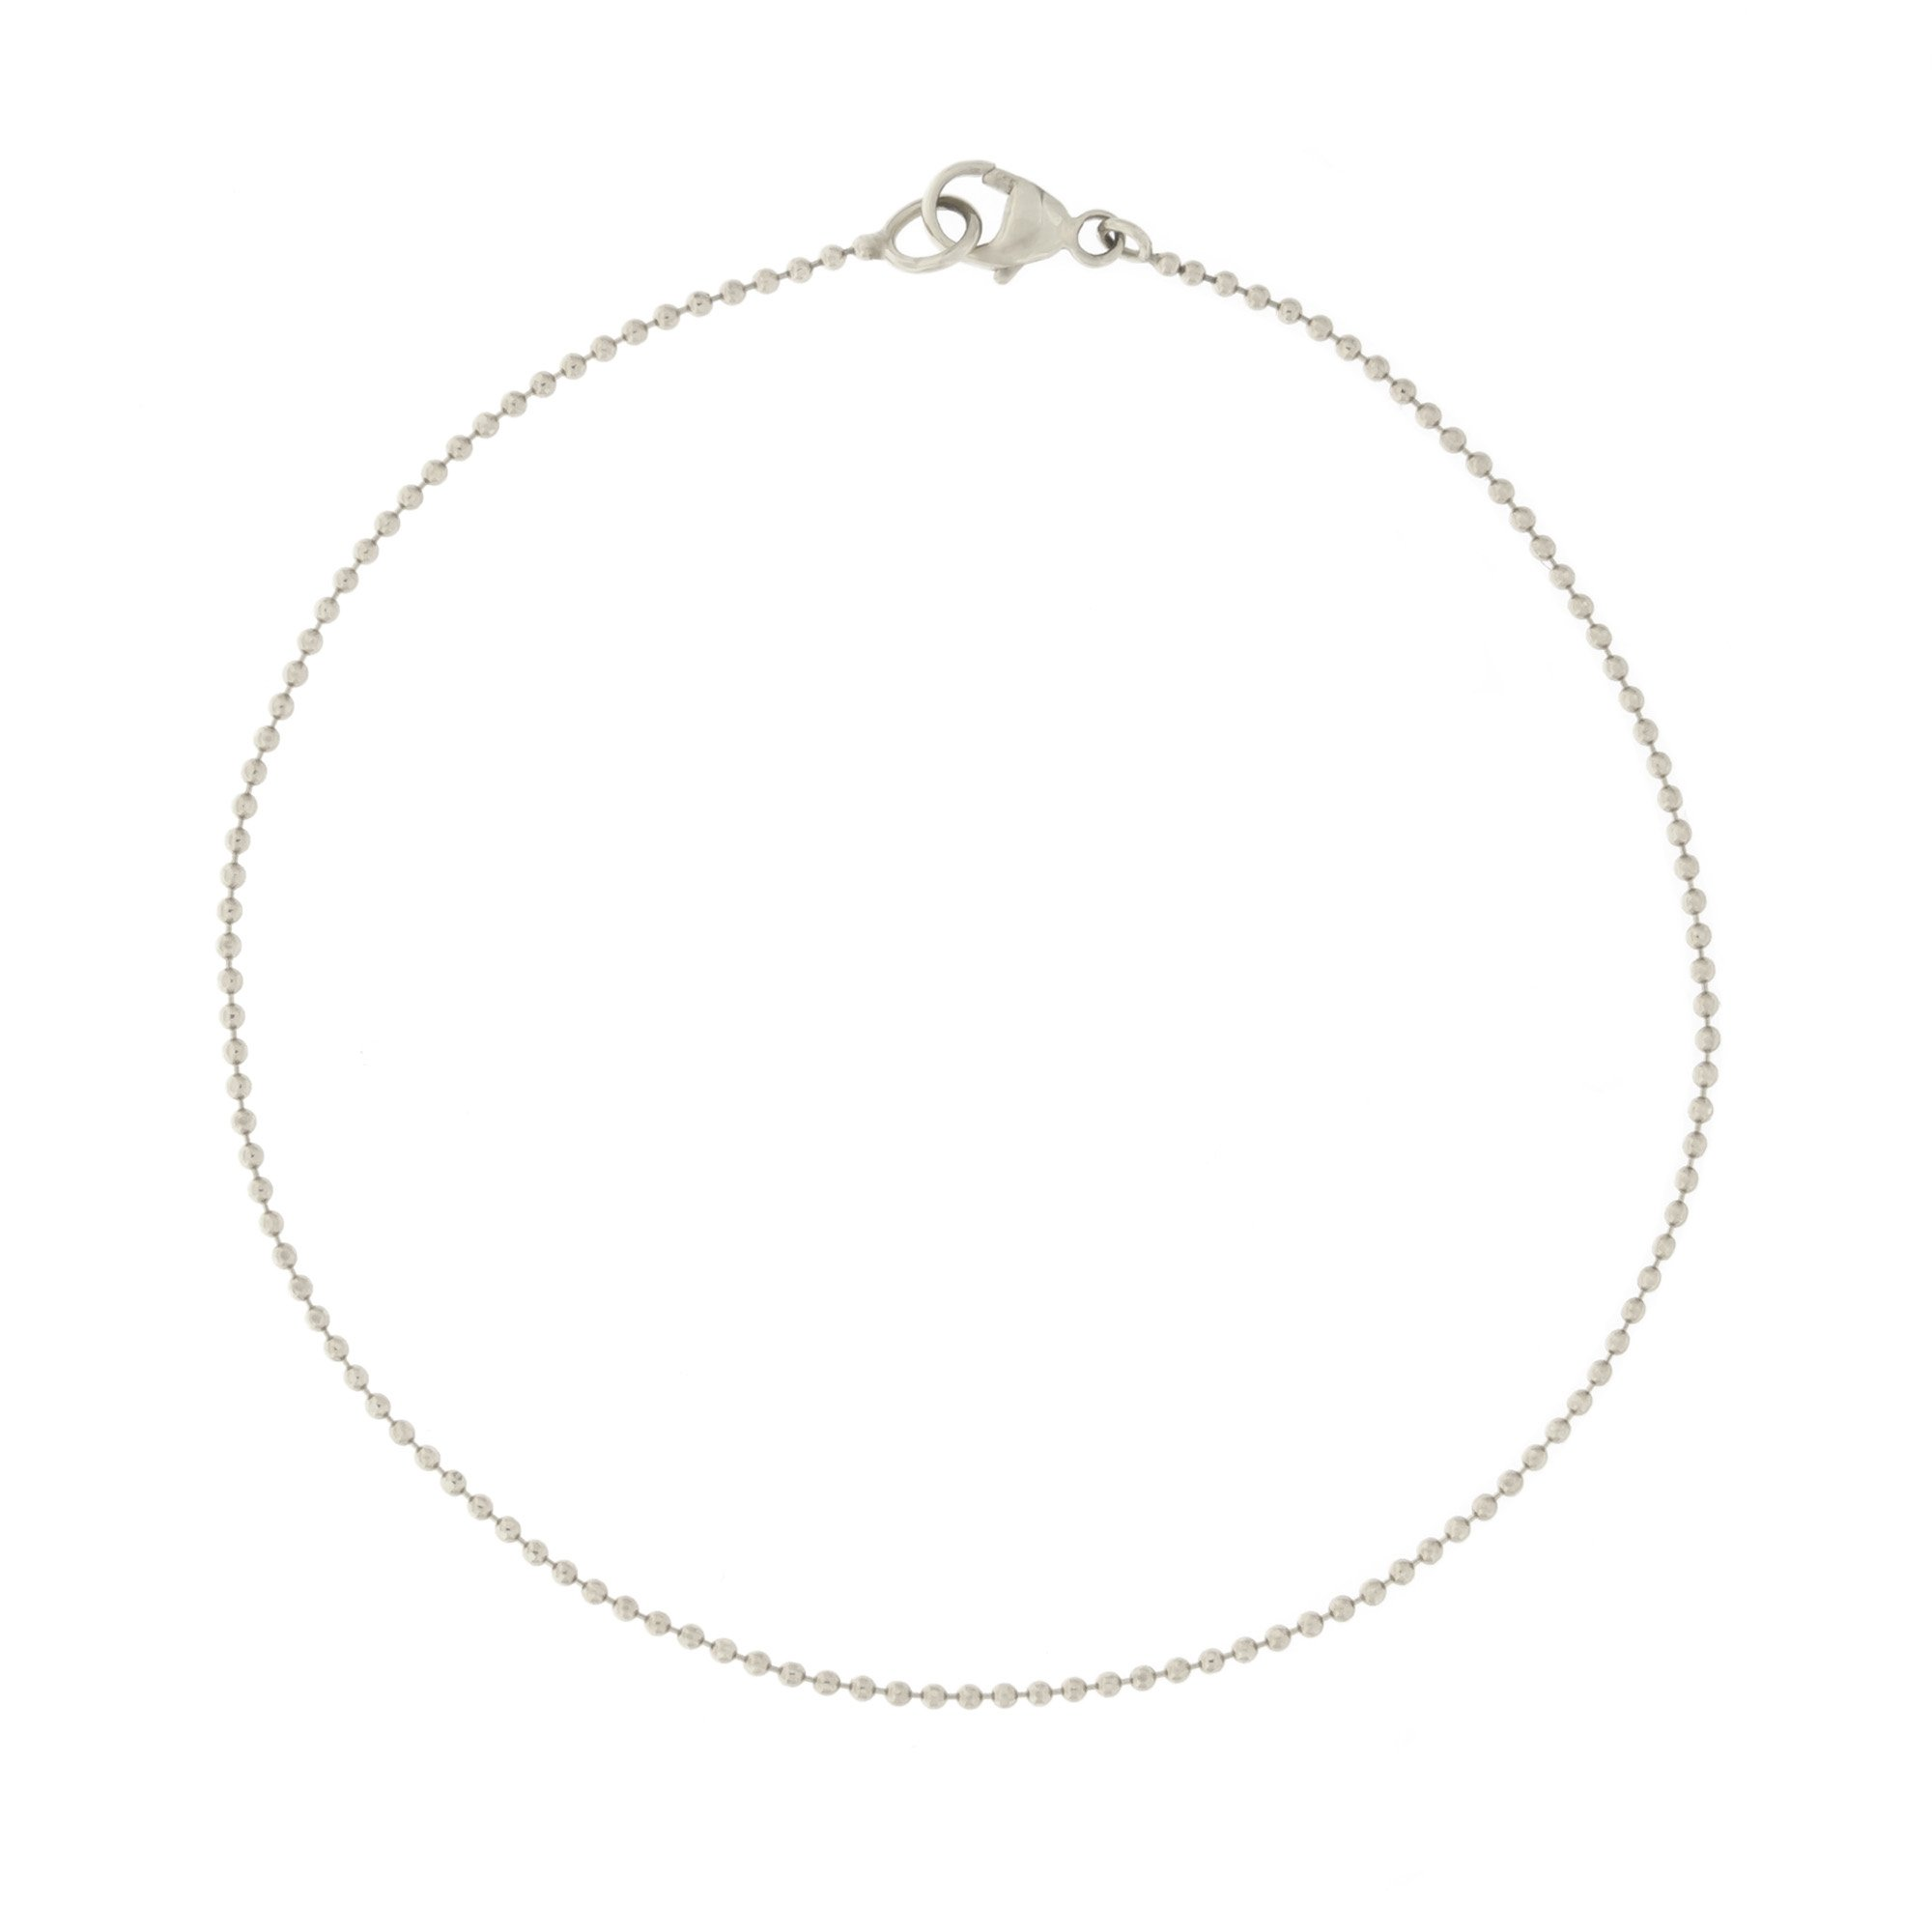 Automic Gold Solid 14k White Gold Chain Bracelet, 6''